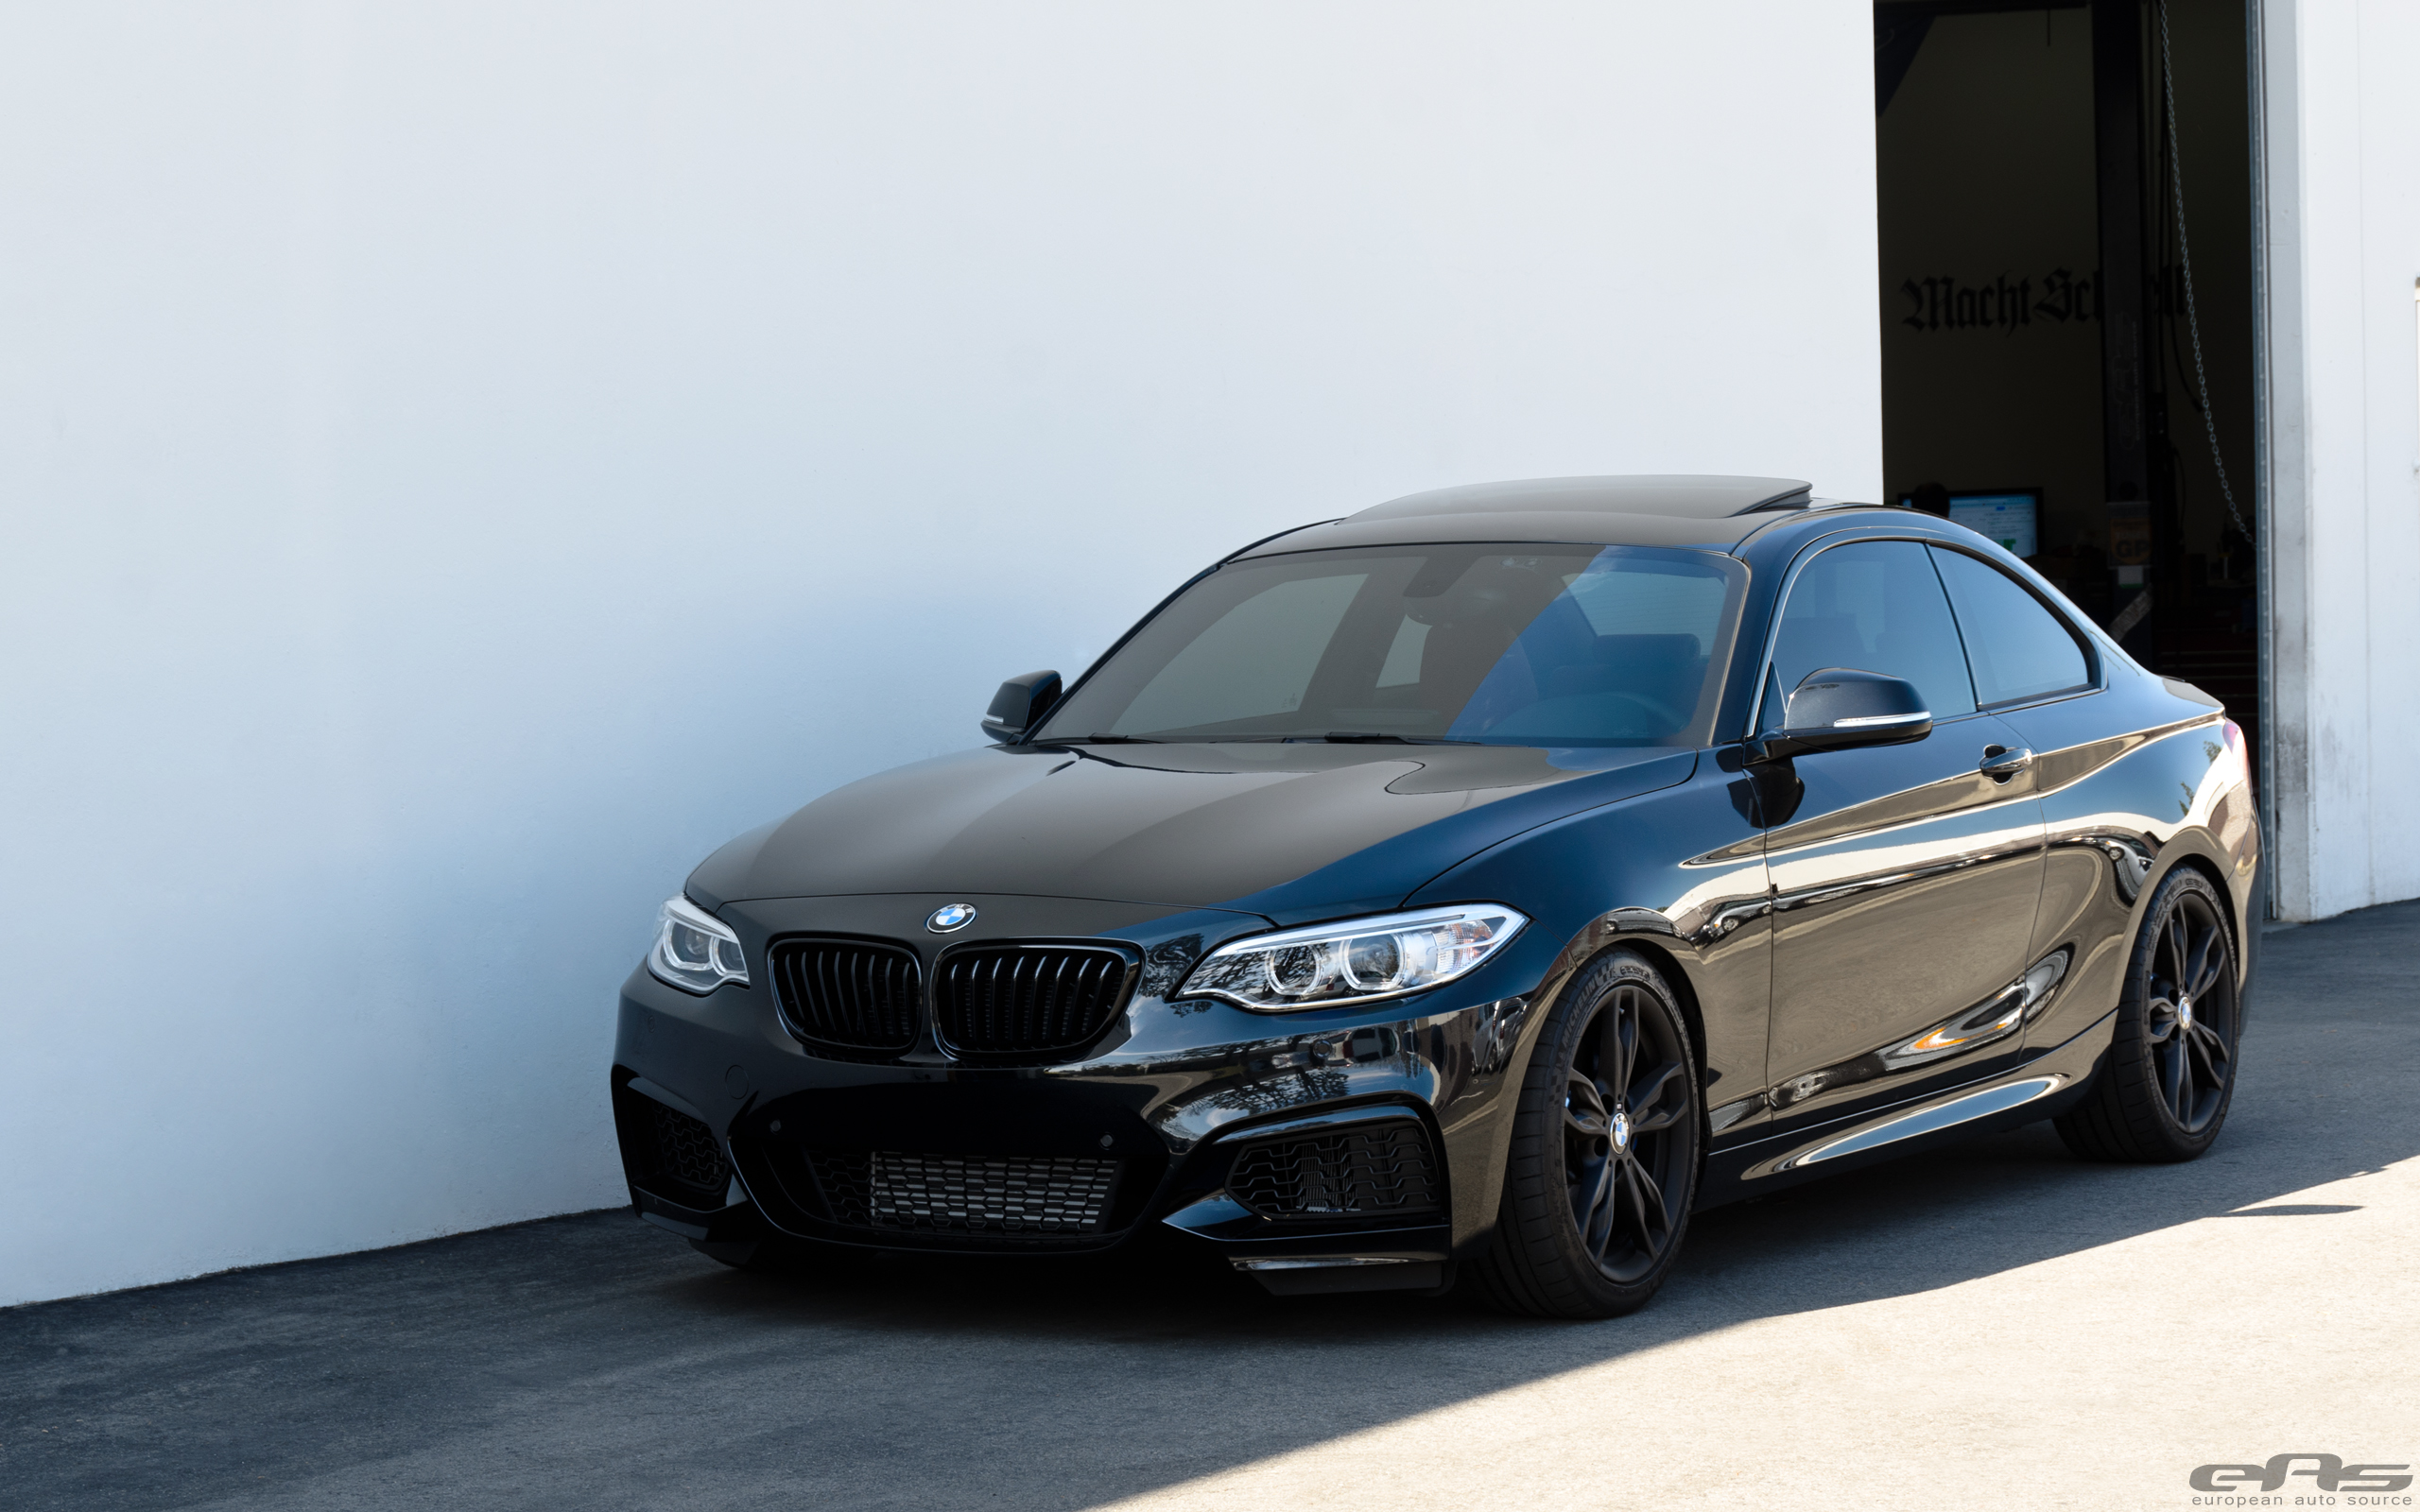 springs spacers for a blacked out m235i bmw. Black Bedroom Furniture Sets. Home Design Ideas